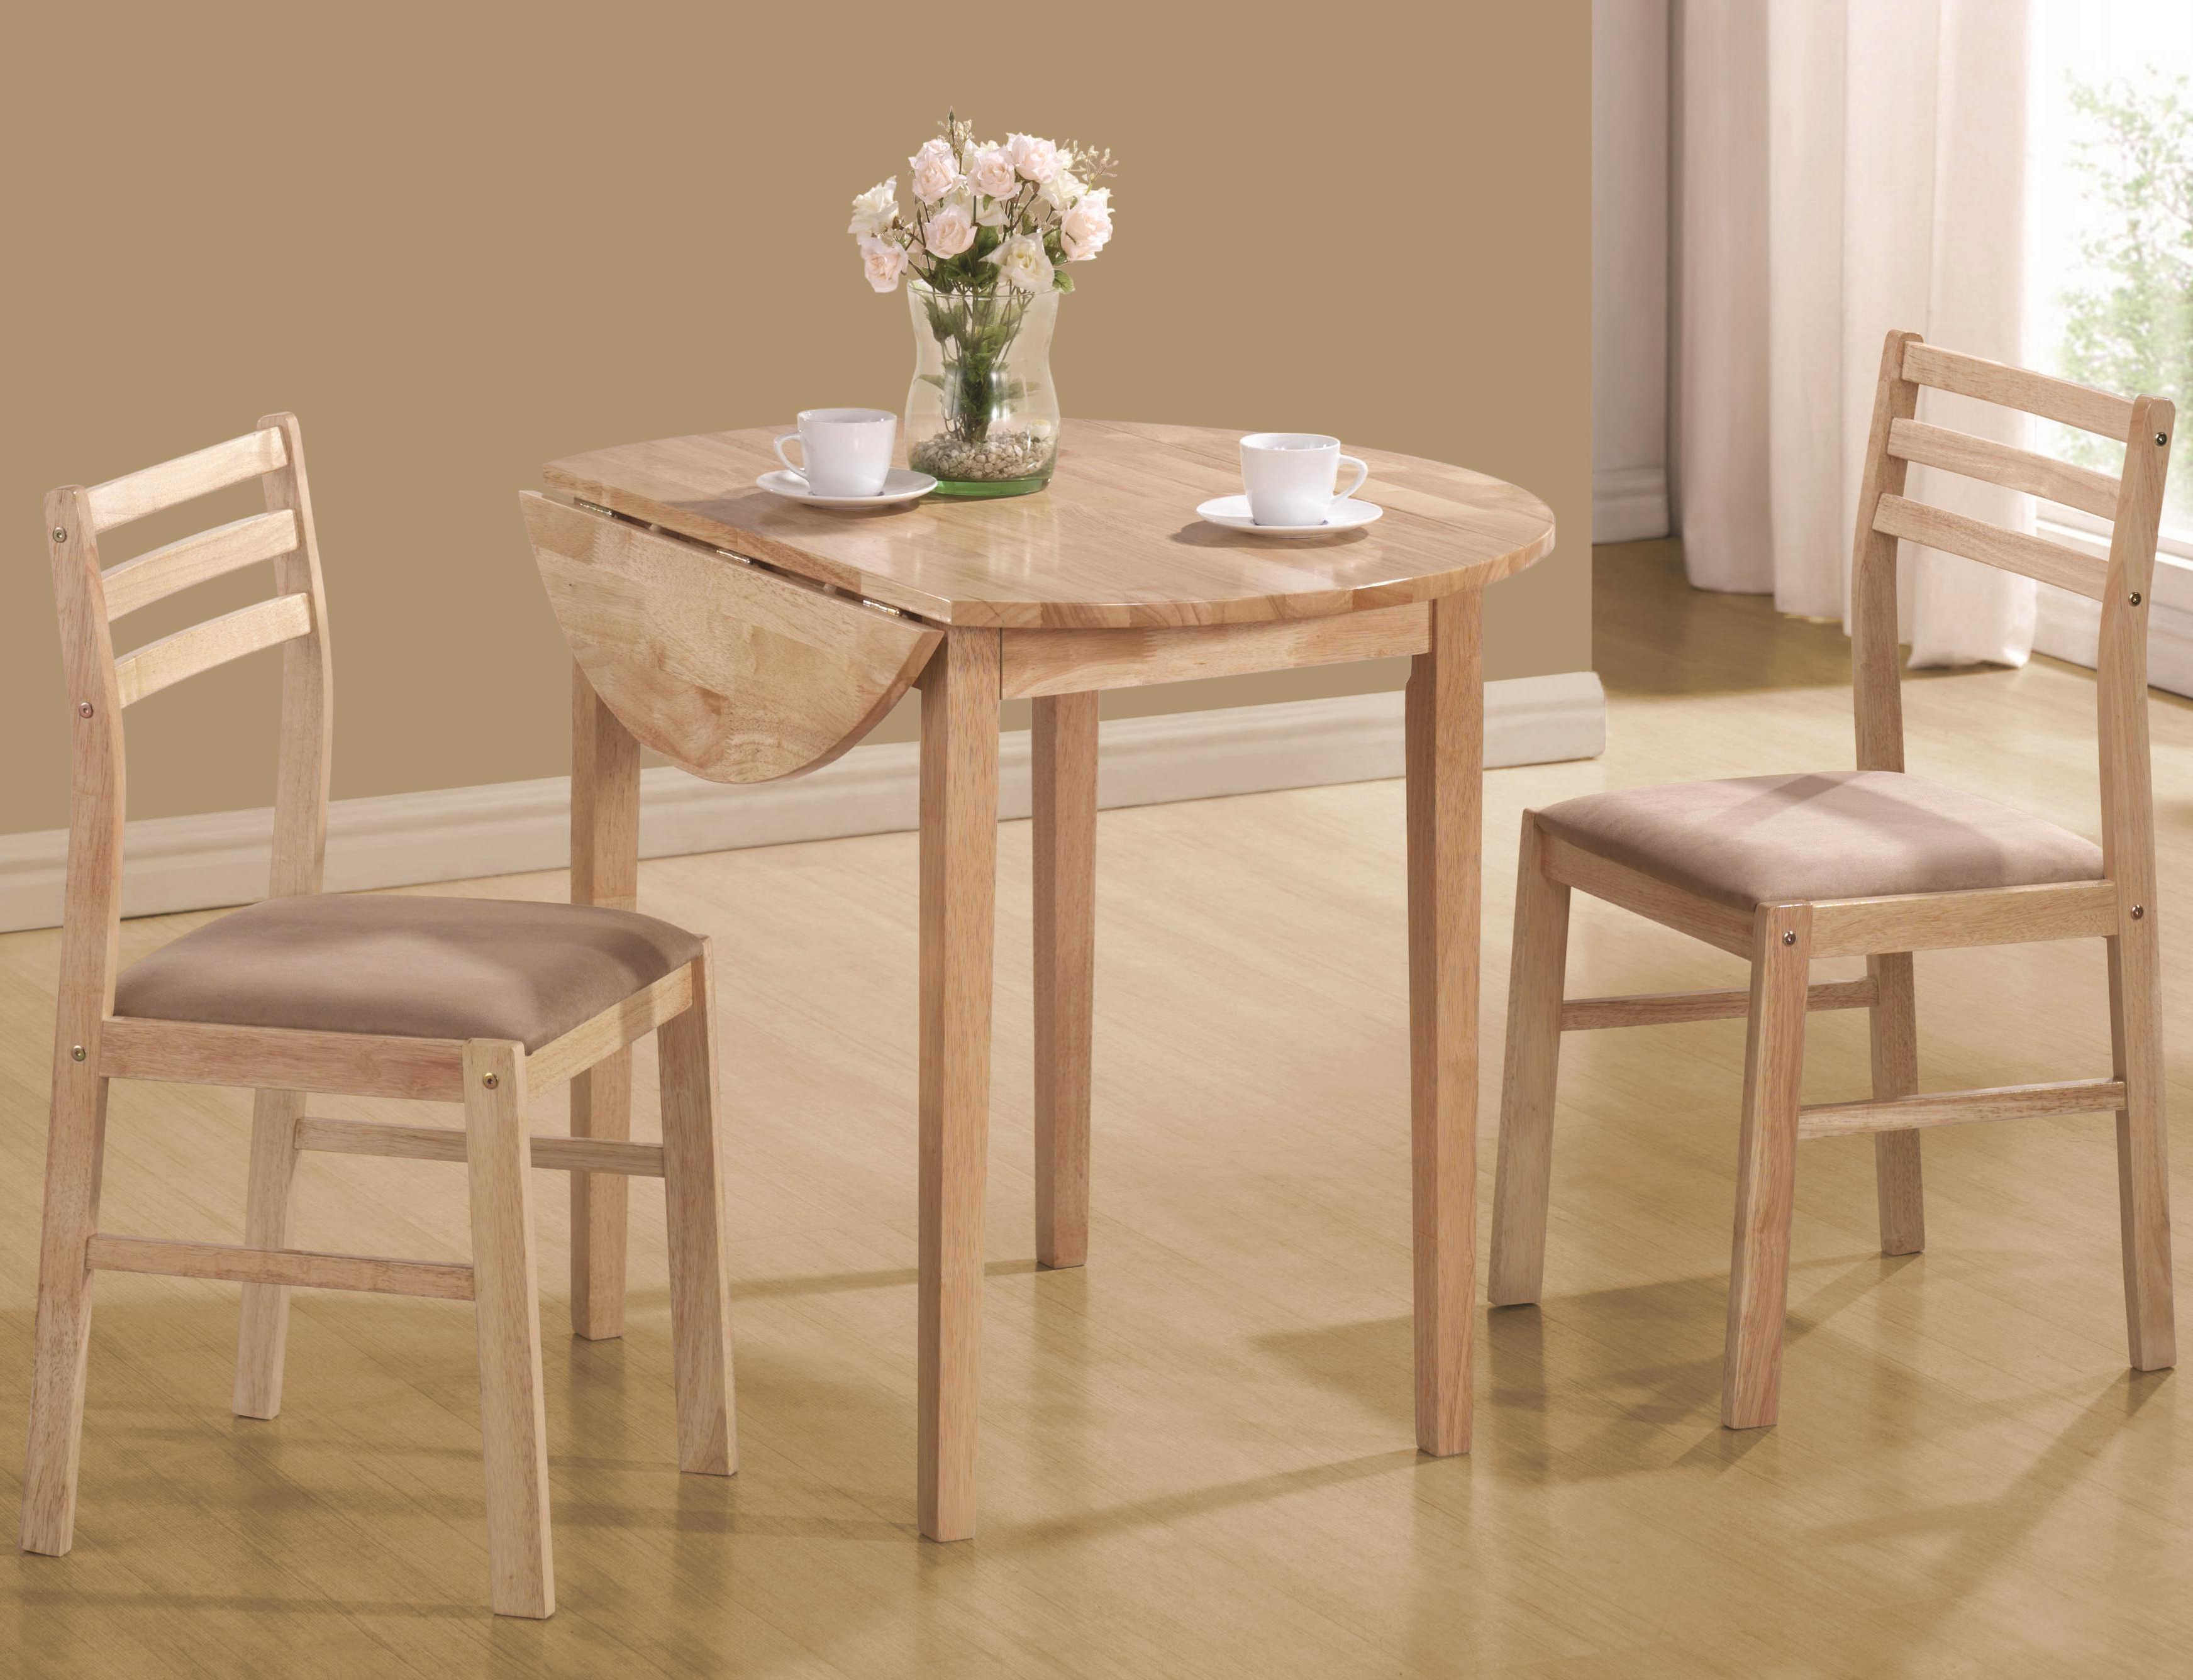 Winsome 3 Piece Counter Height Dining Sets For Well Liked Dinettes Casual 3 Piece Table & Chair Setcoaster At Value City Furniture (View 11 of 20)